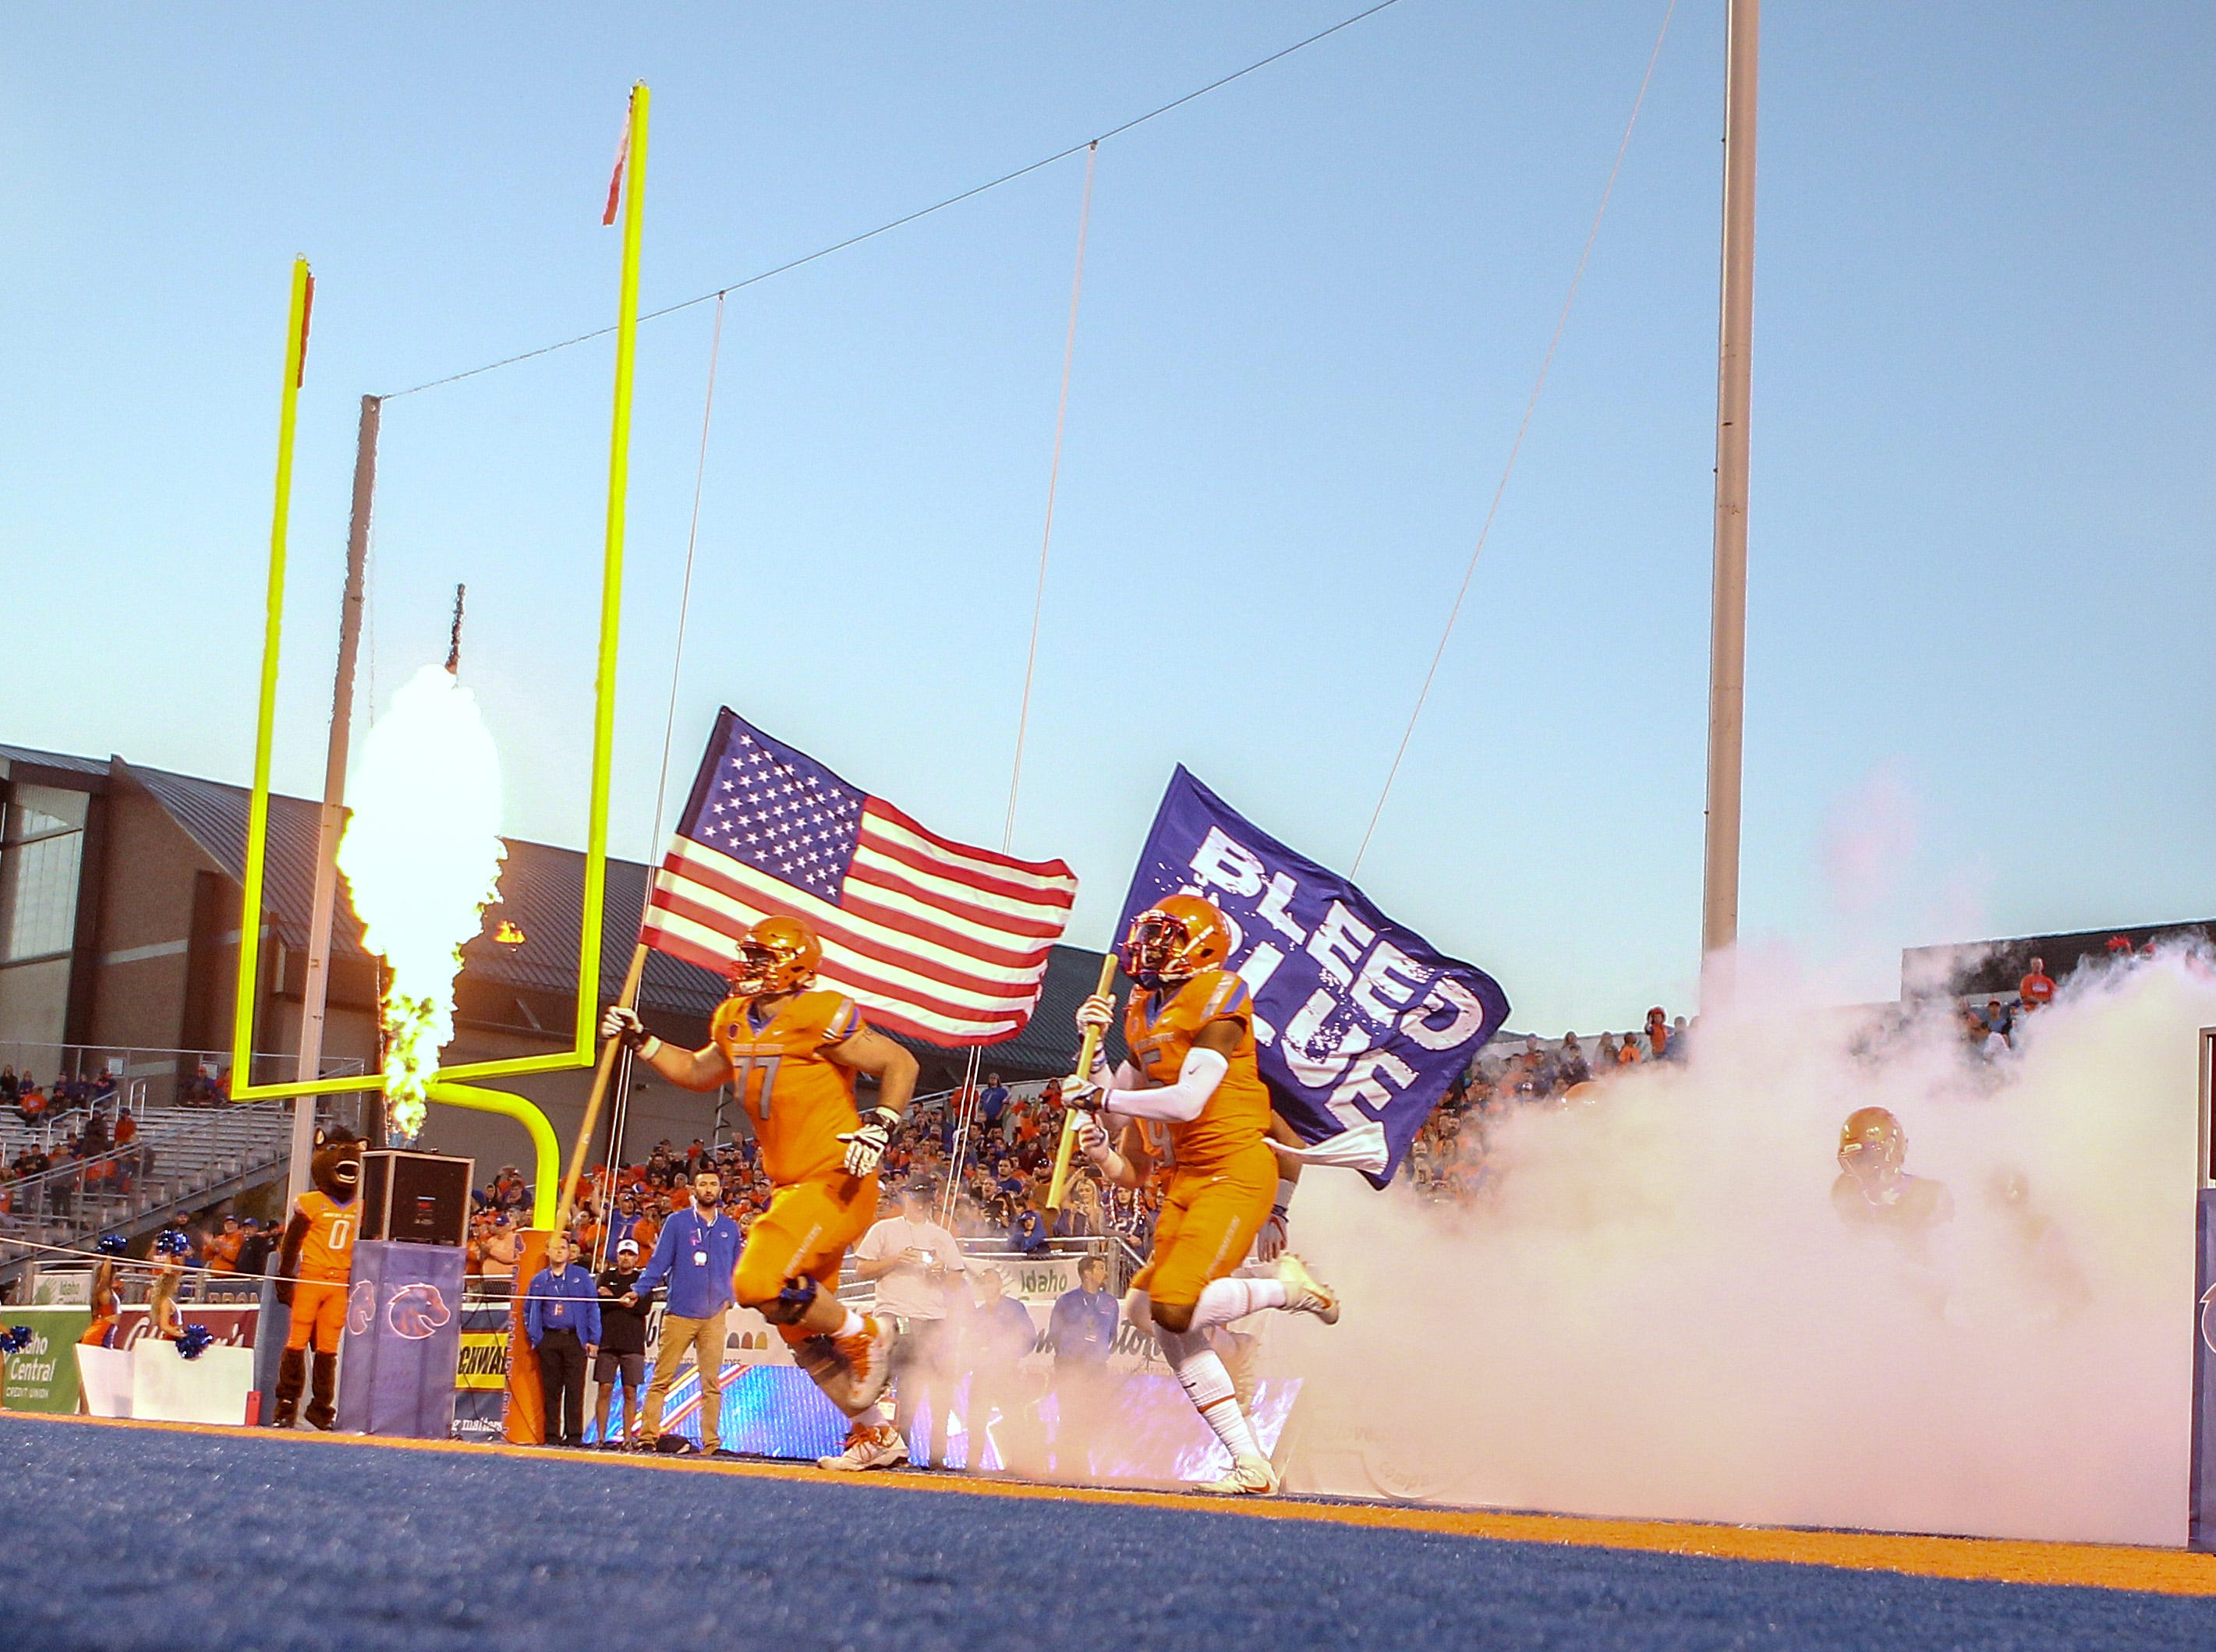 The Boise State Broncos take the field prior to a game against the Colorado State Rams at Albertsons Stadium.